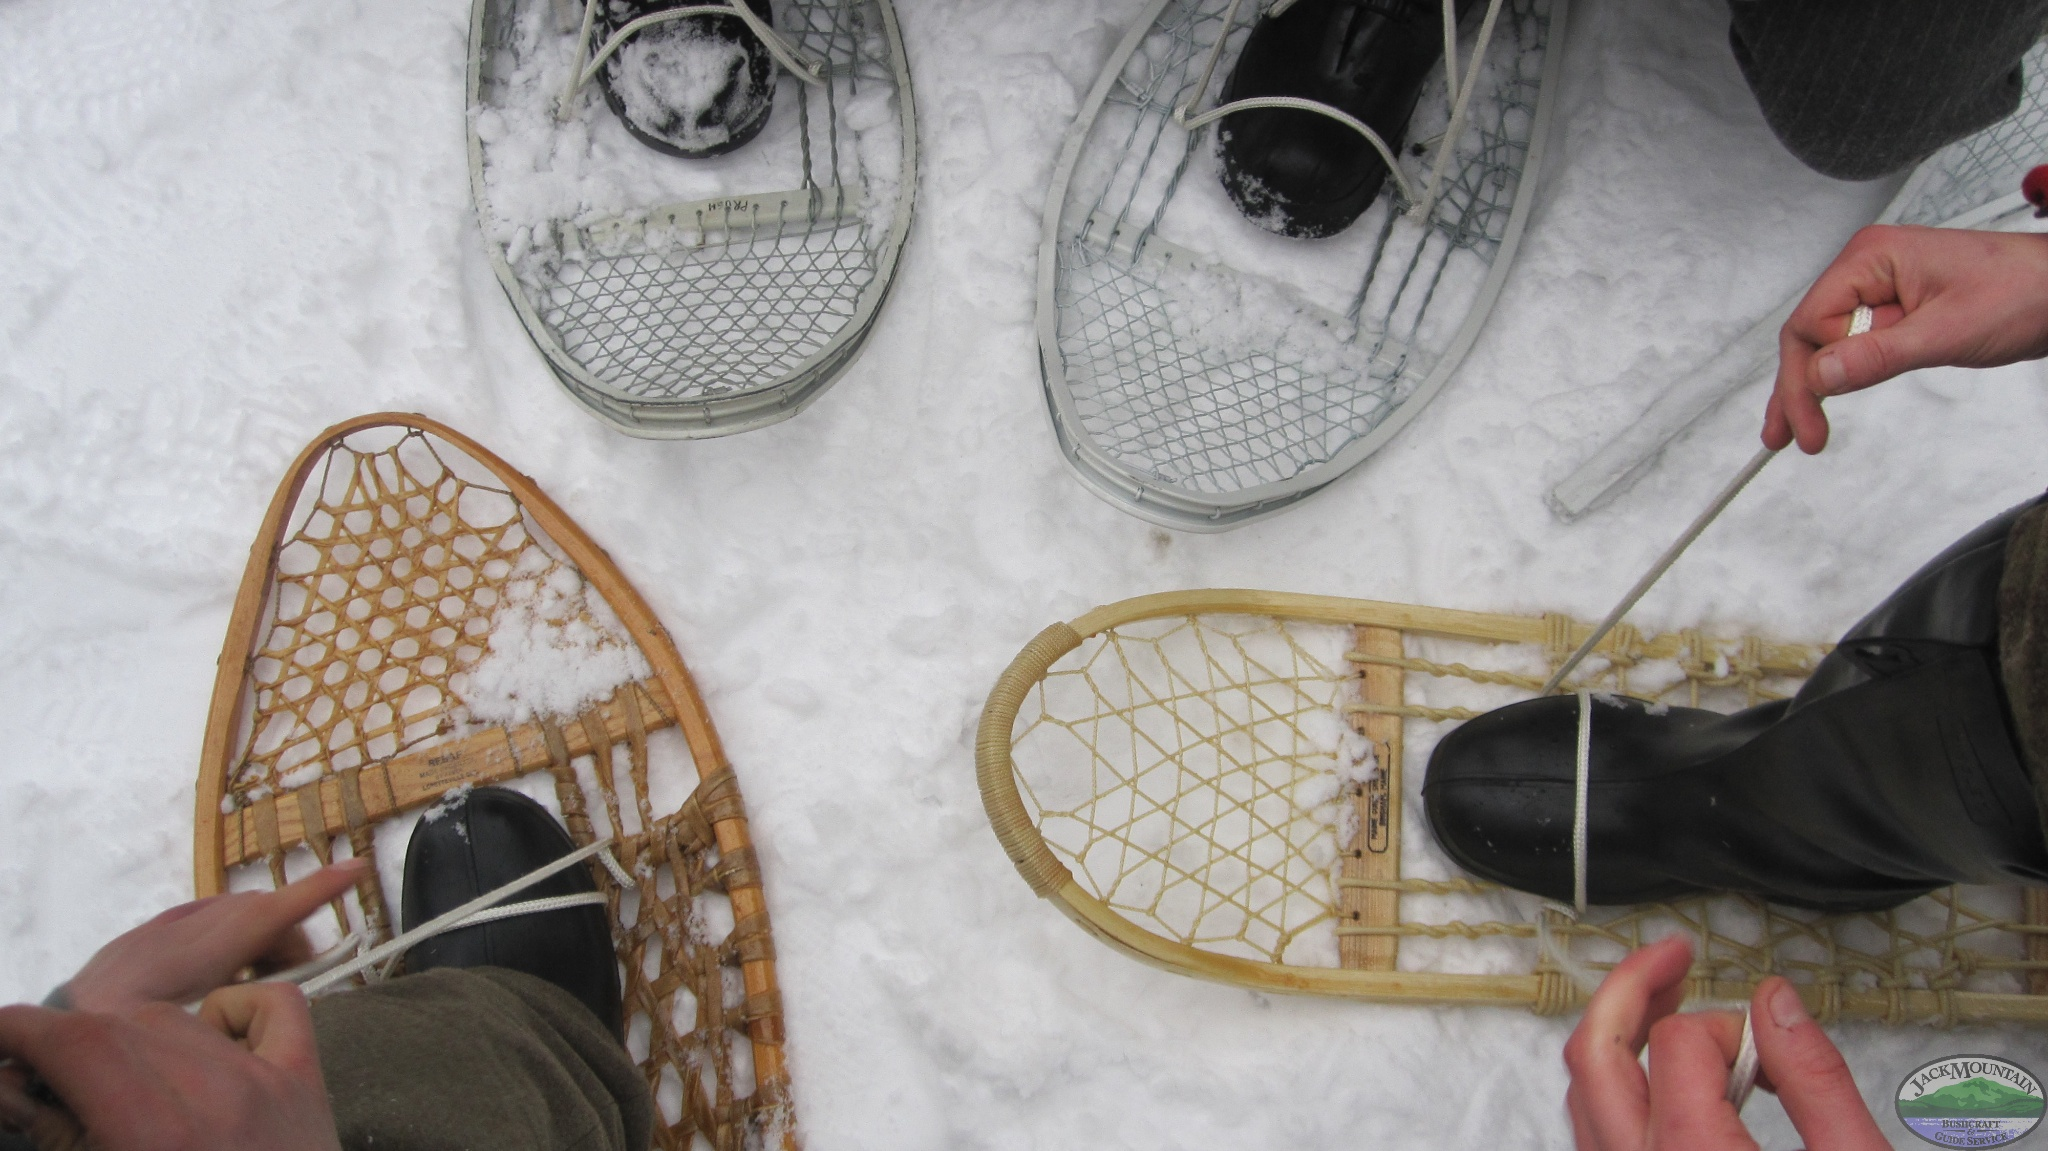 Tying Snowshoes On